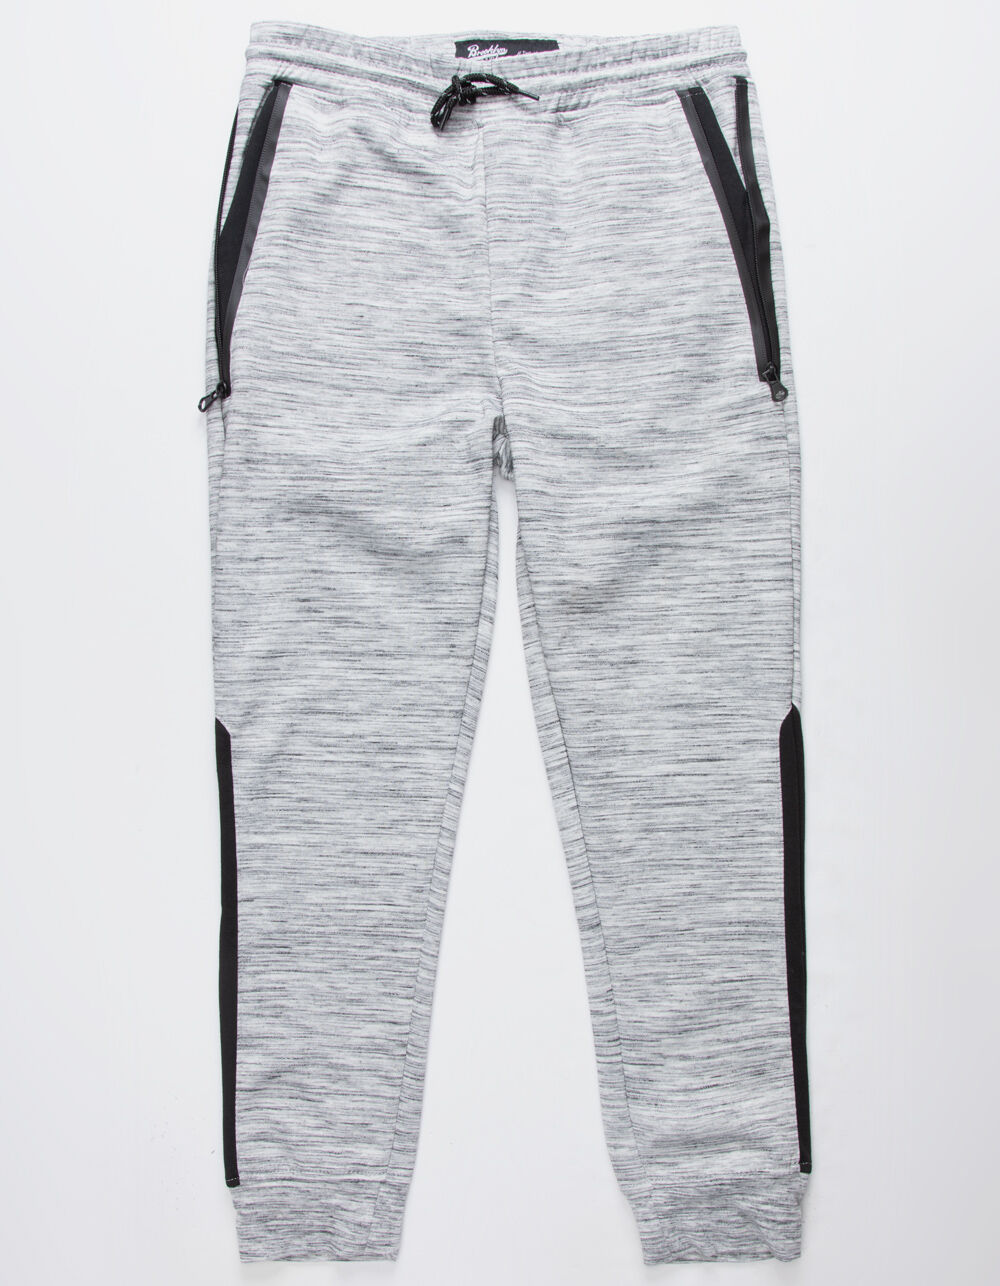 Image of BROOKLYN CLOTH BLOCKED SPACE DYE BOYS JOGGER PANTS